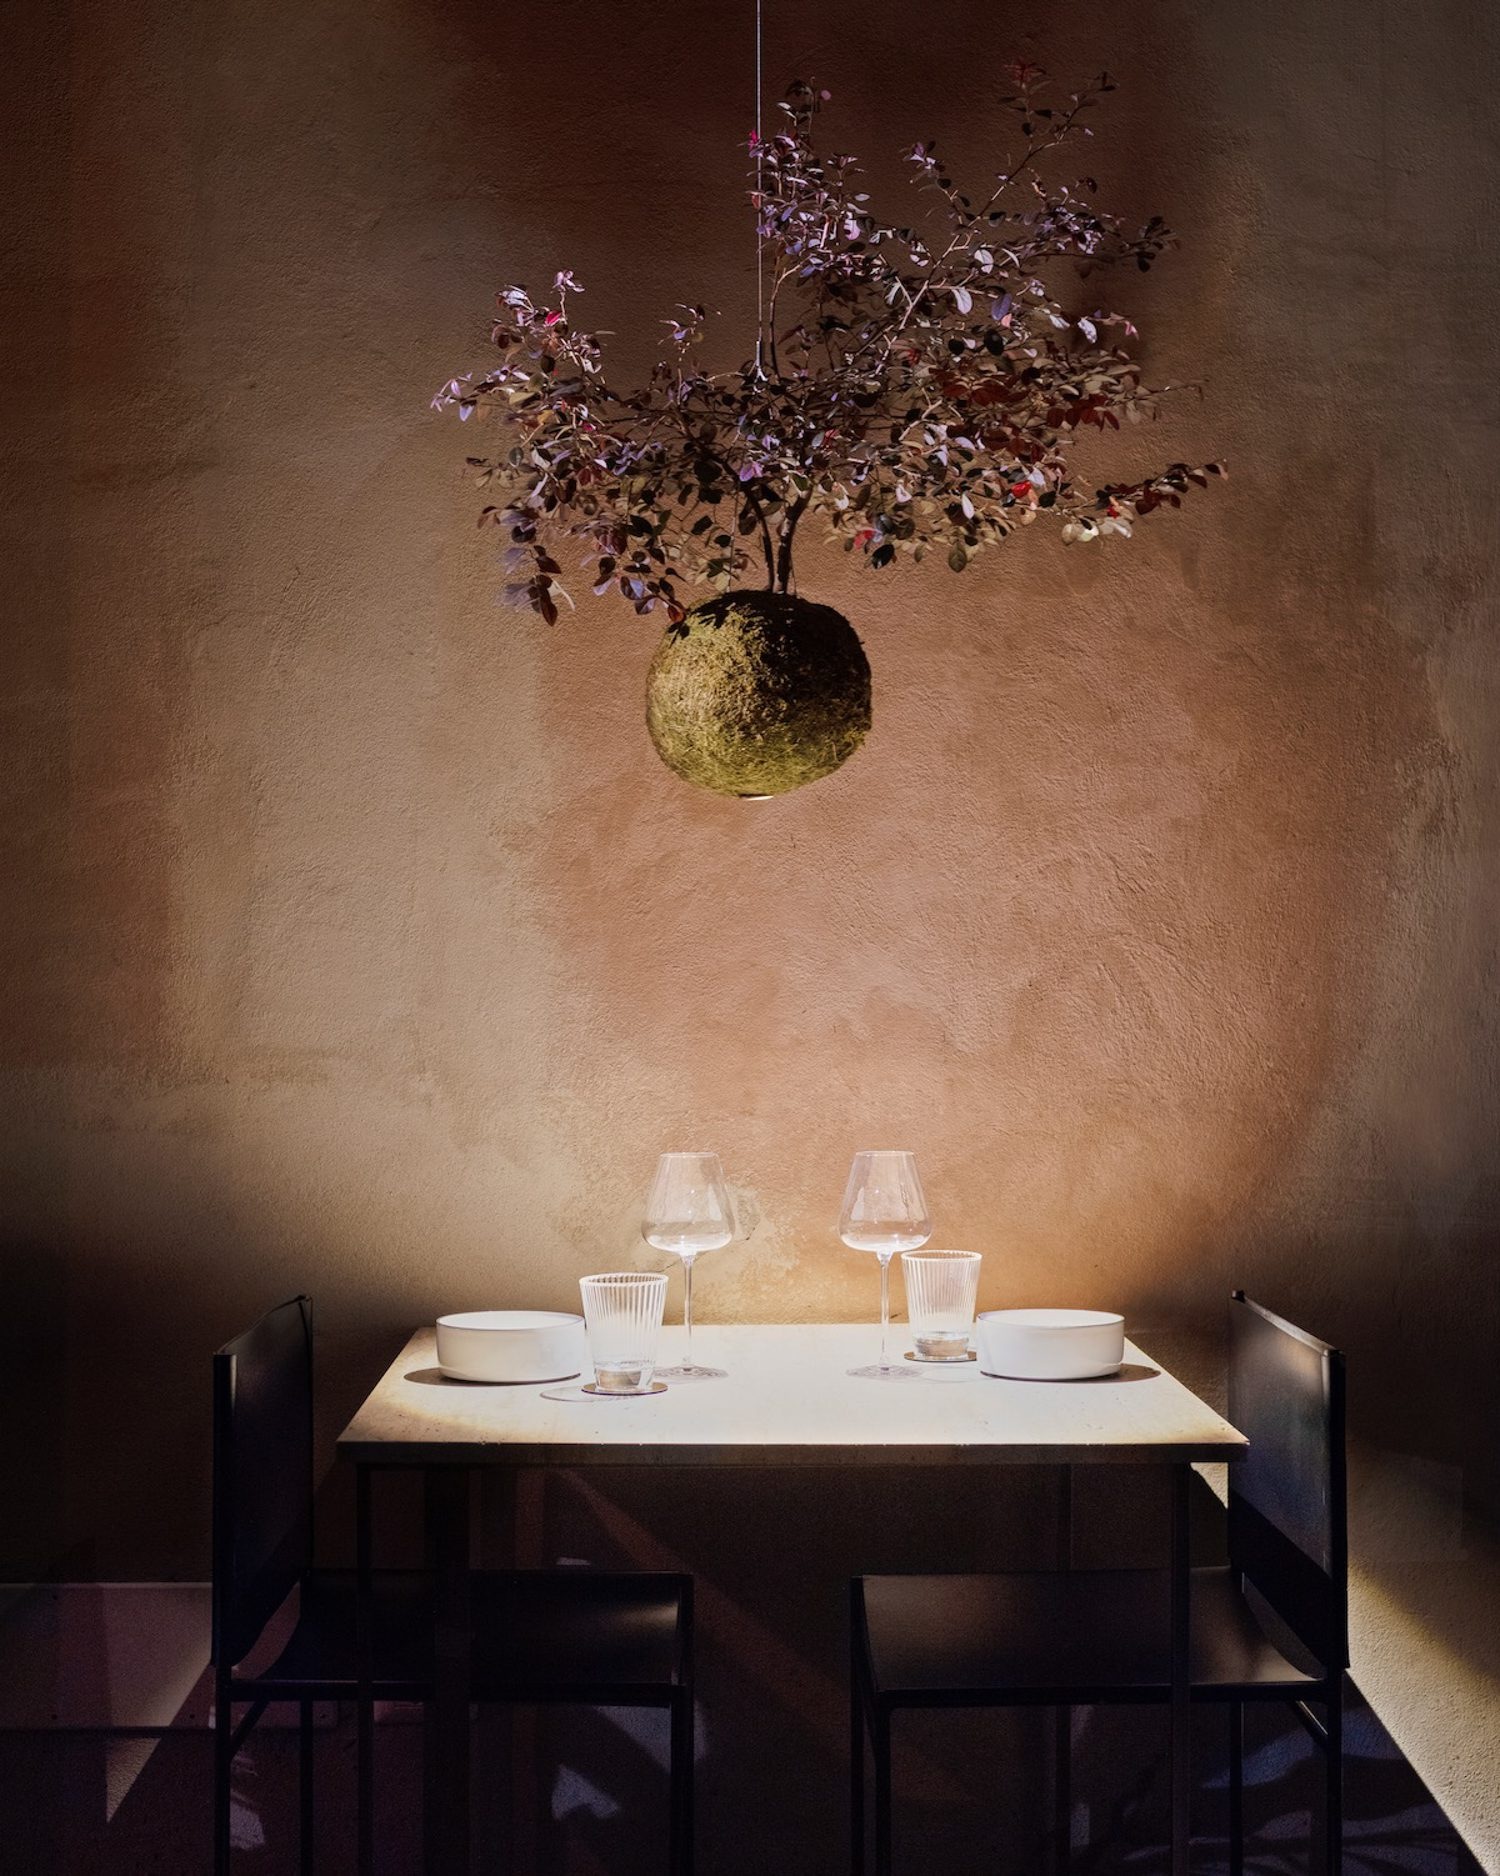 With the living pendant light, the design studio aims to draw nature into an urban landscape.